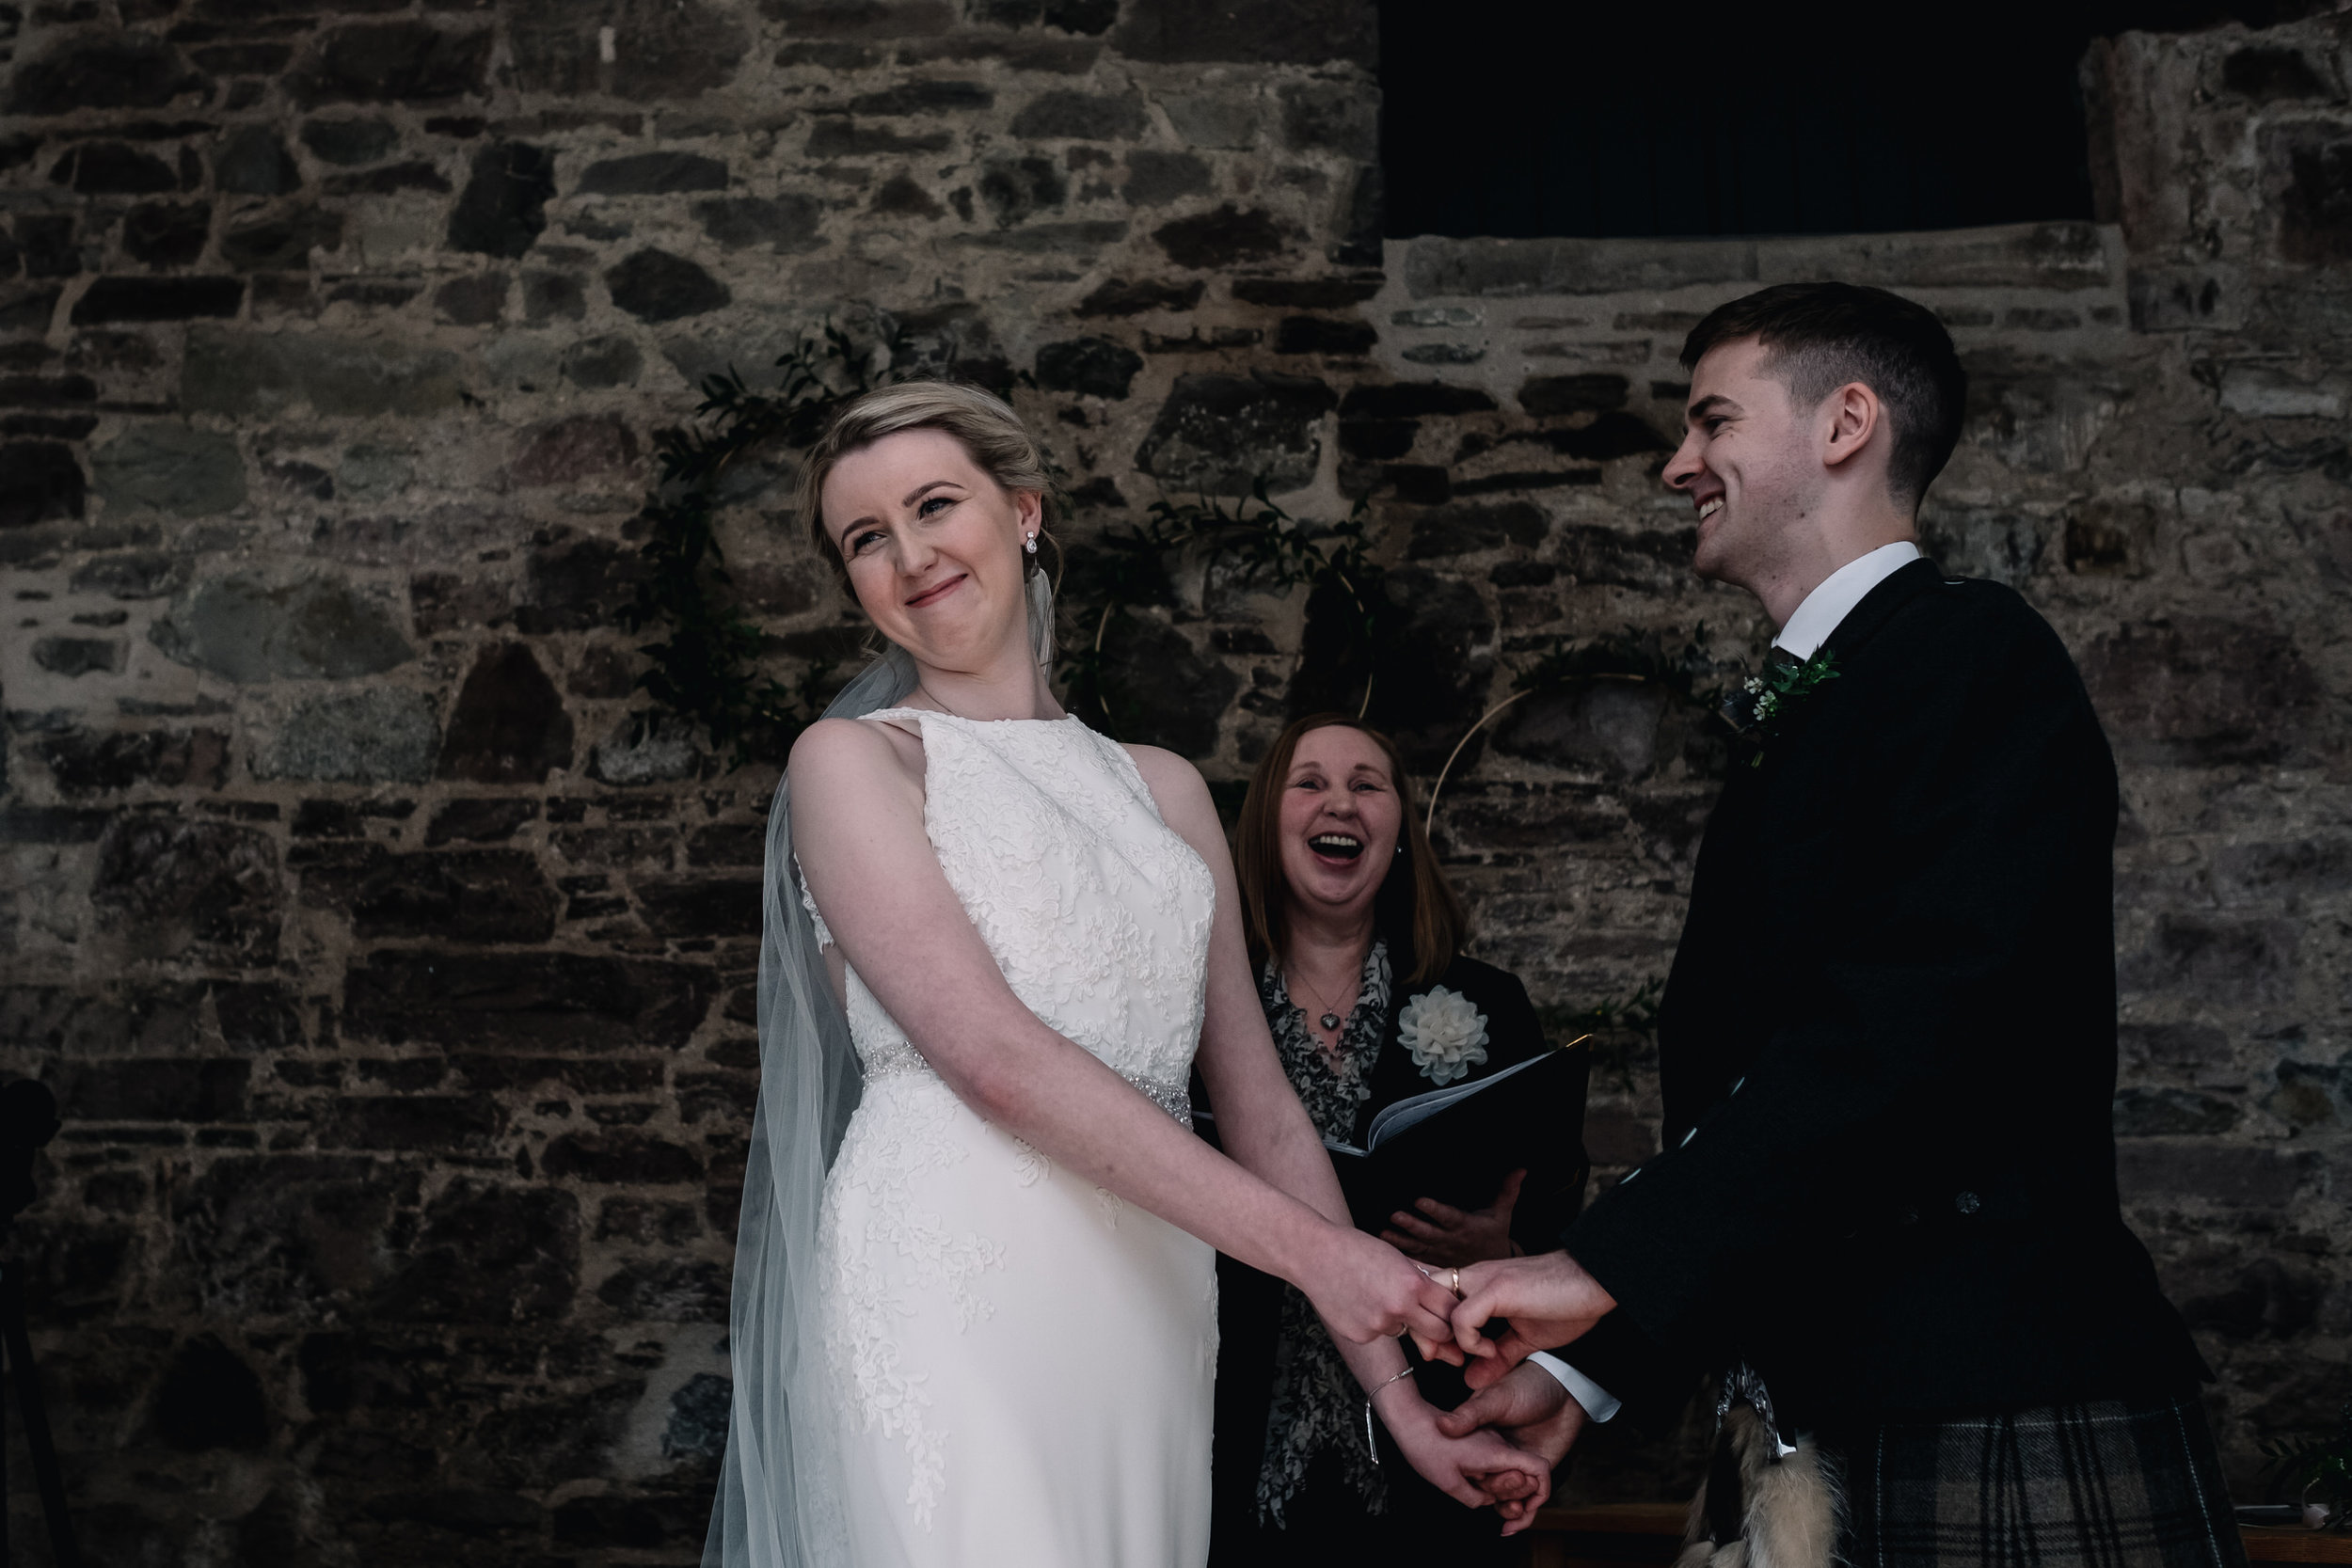 Laughter during wedding ceremony